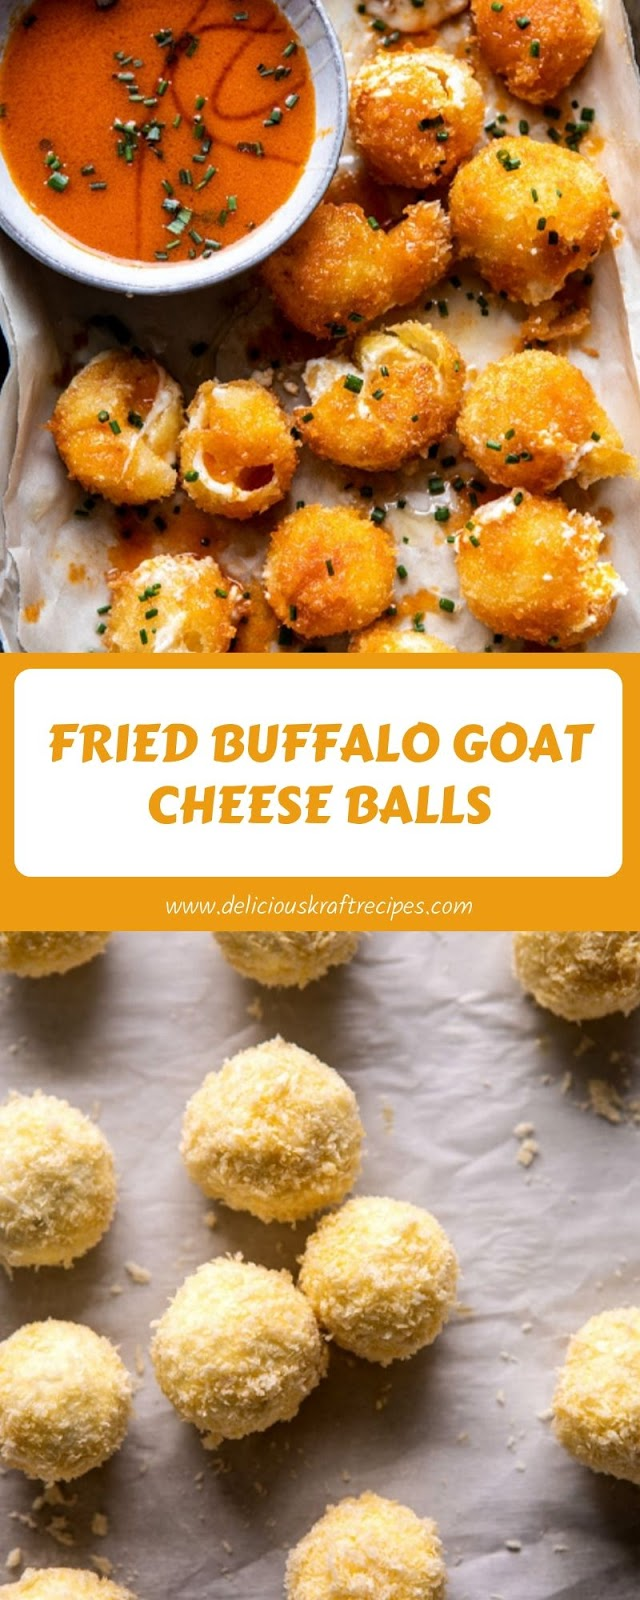 FRIED BUFFALO GOAT CHEESE BALLS